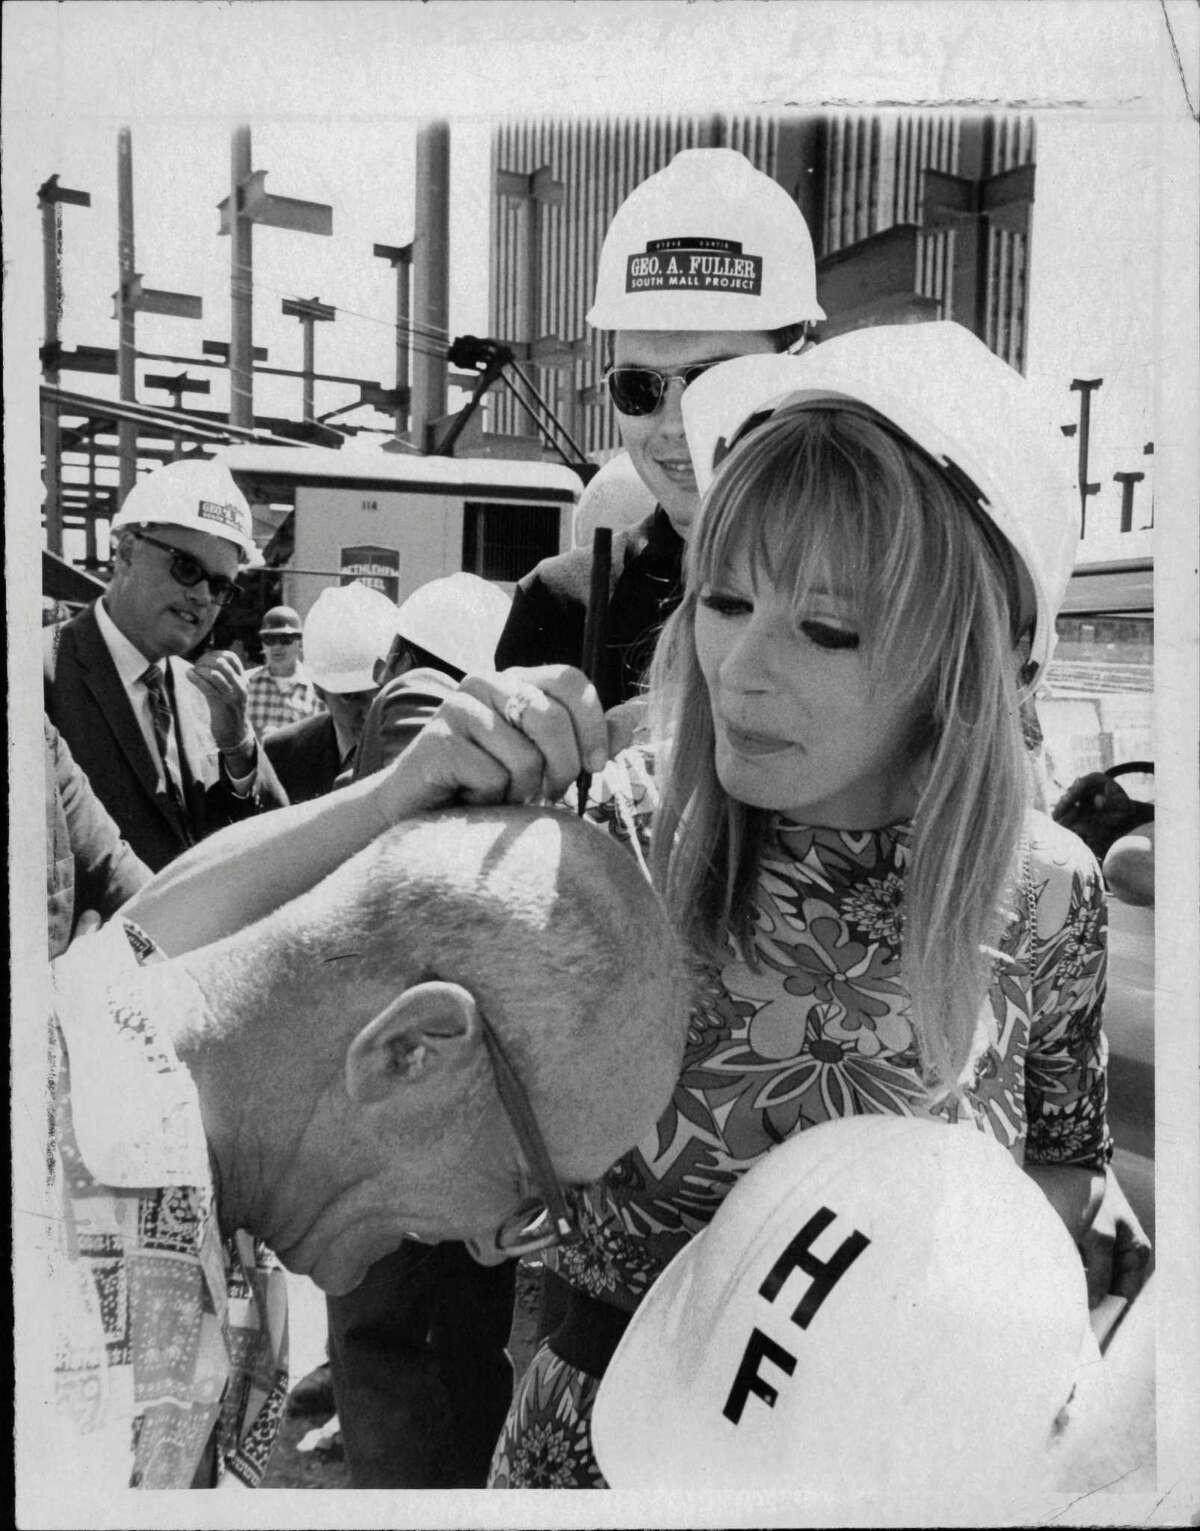 Fan removes hard hat so actor Elke Sommer can autograph his bald head. Undated (Times Union Archive)